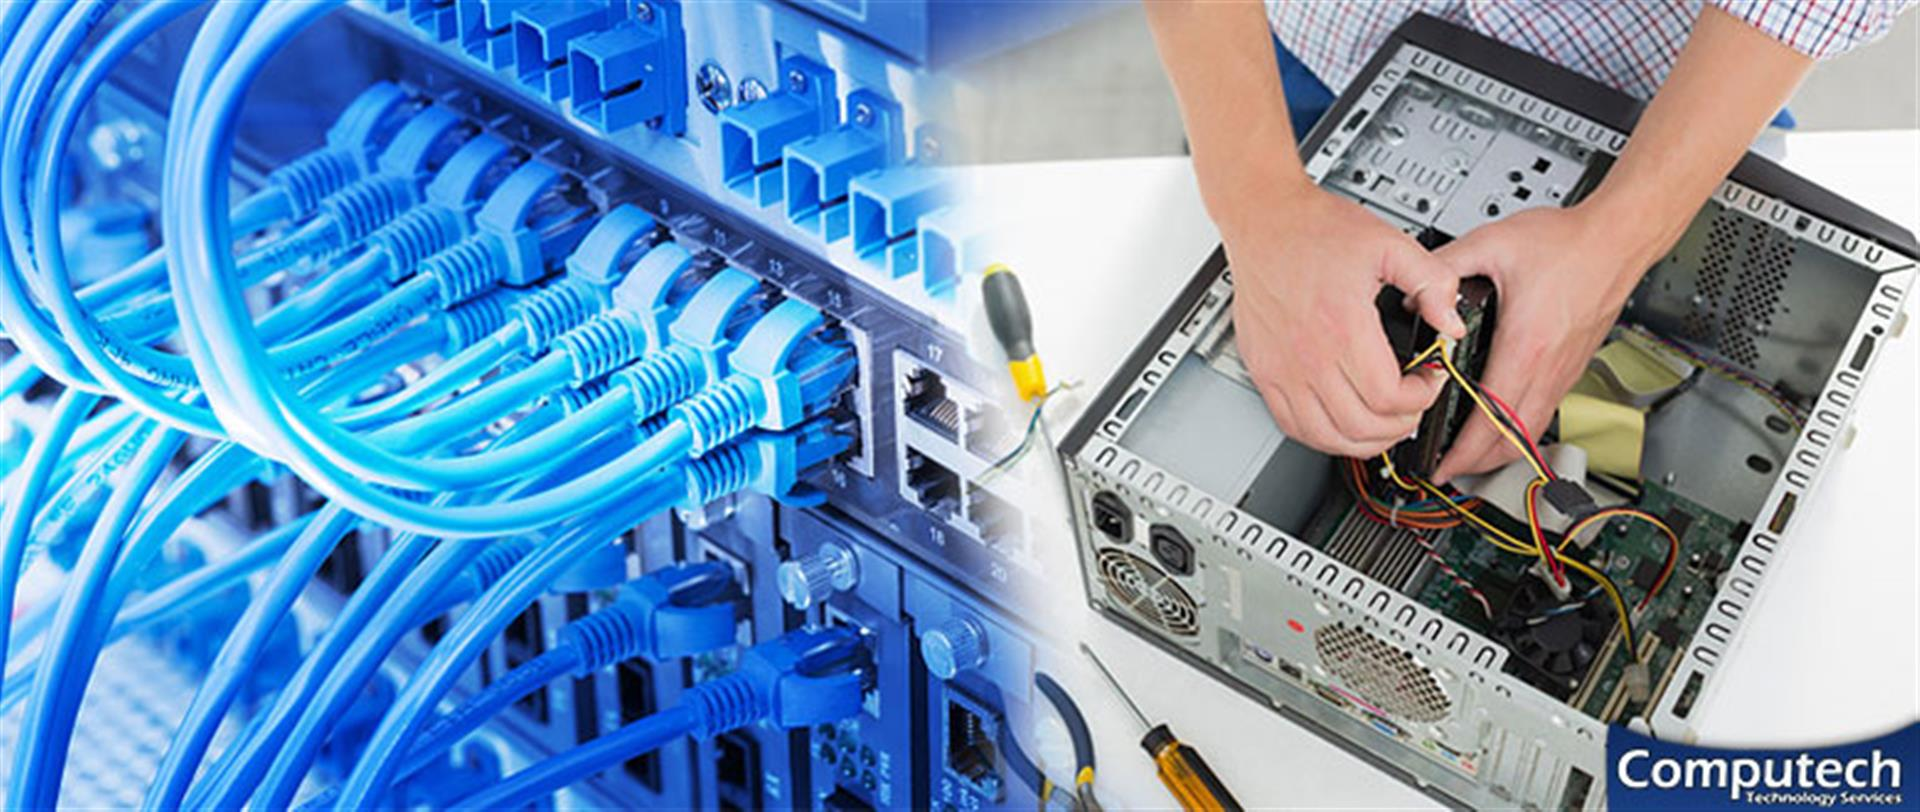 Clayton Alabama Onsite PC & Printer Repairs, Network, Voice & Data Wiring Services